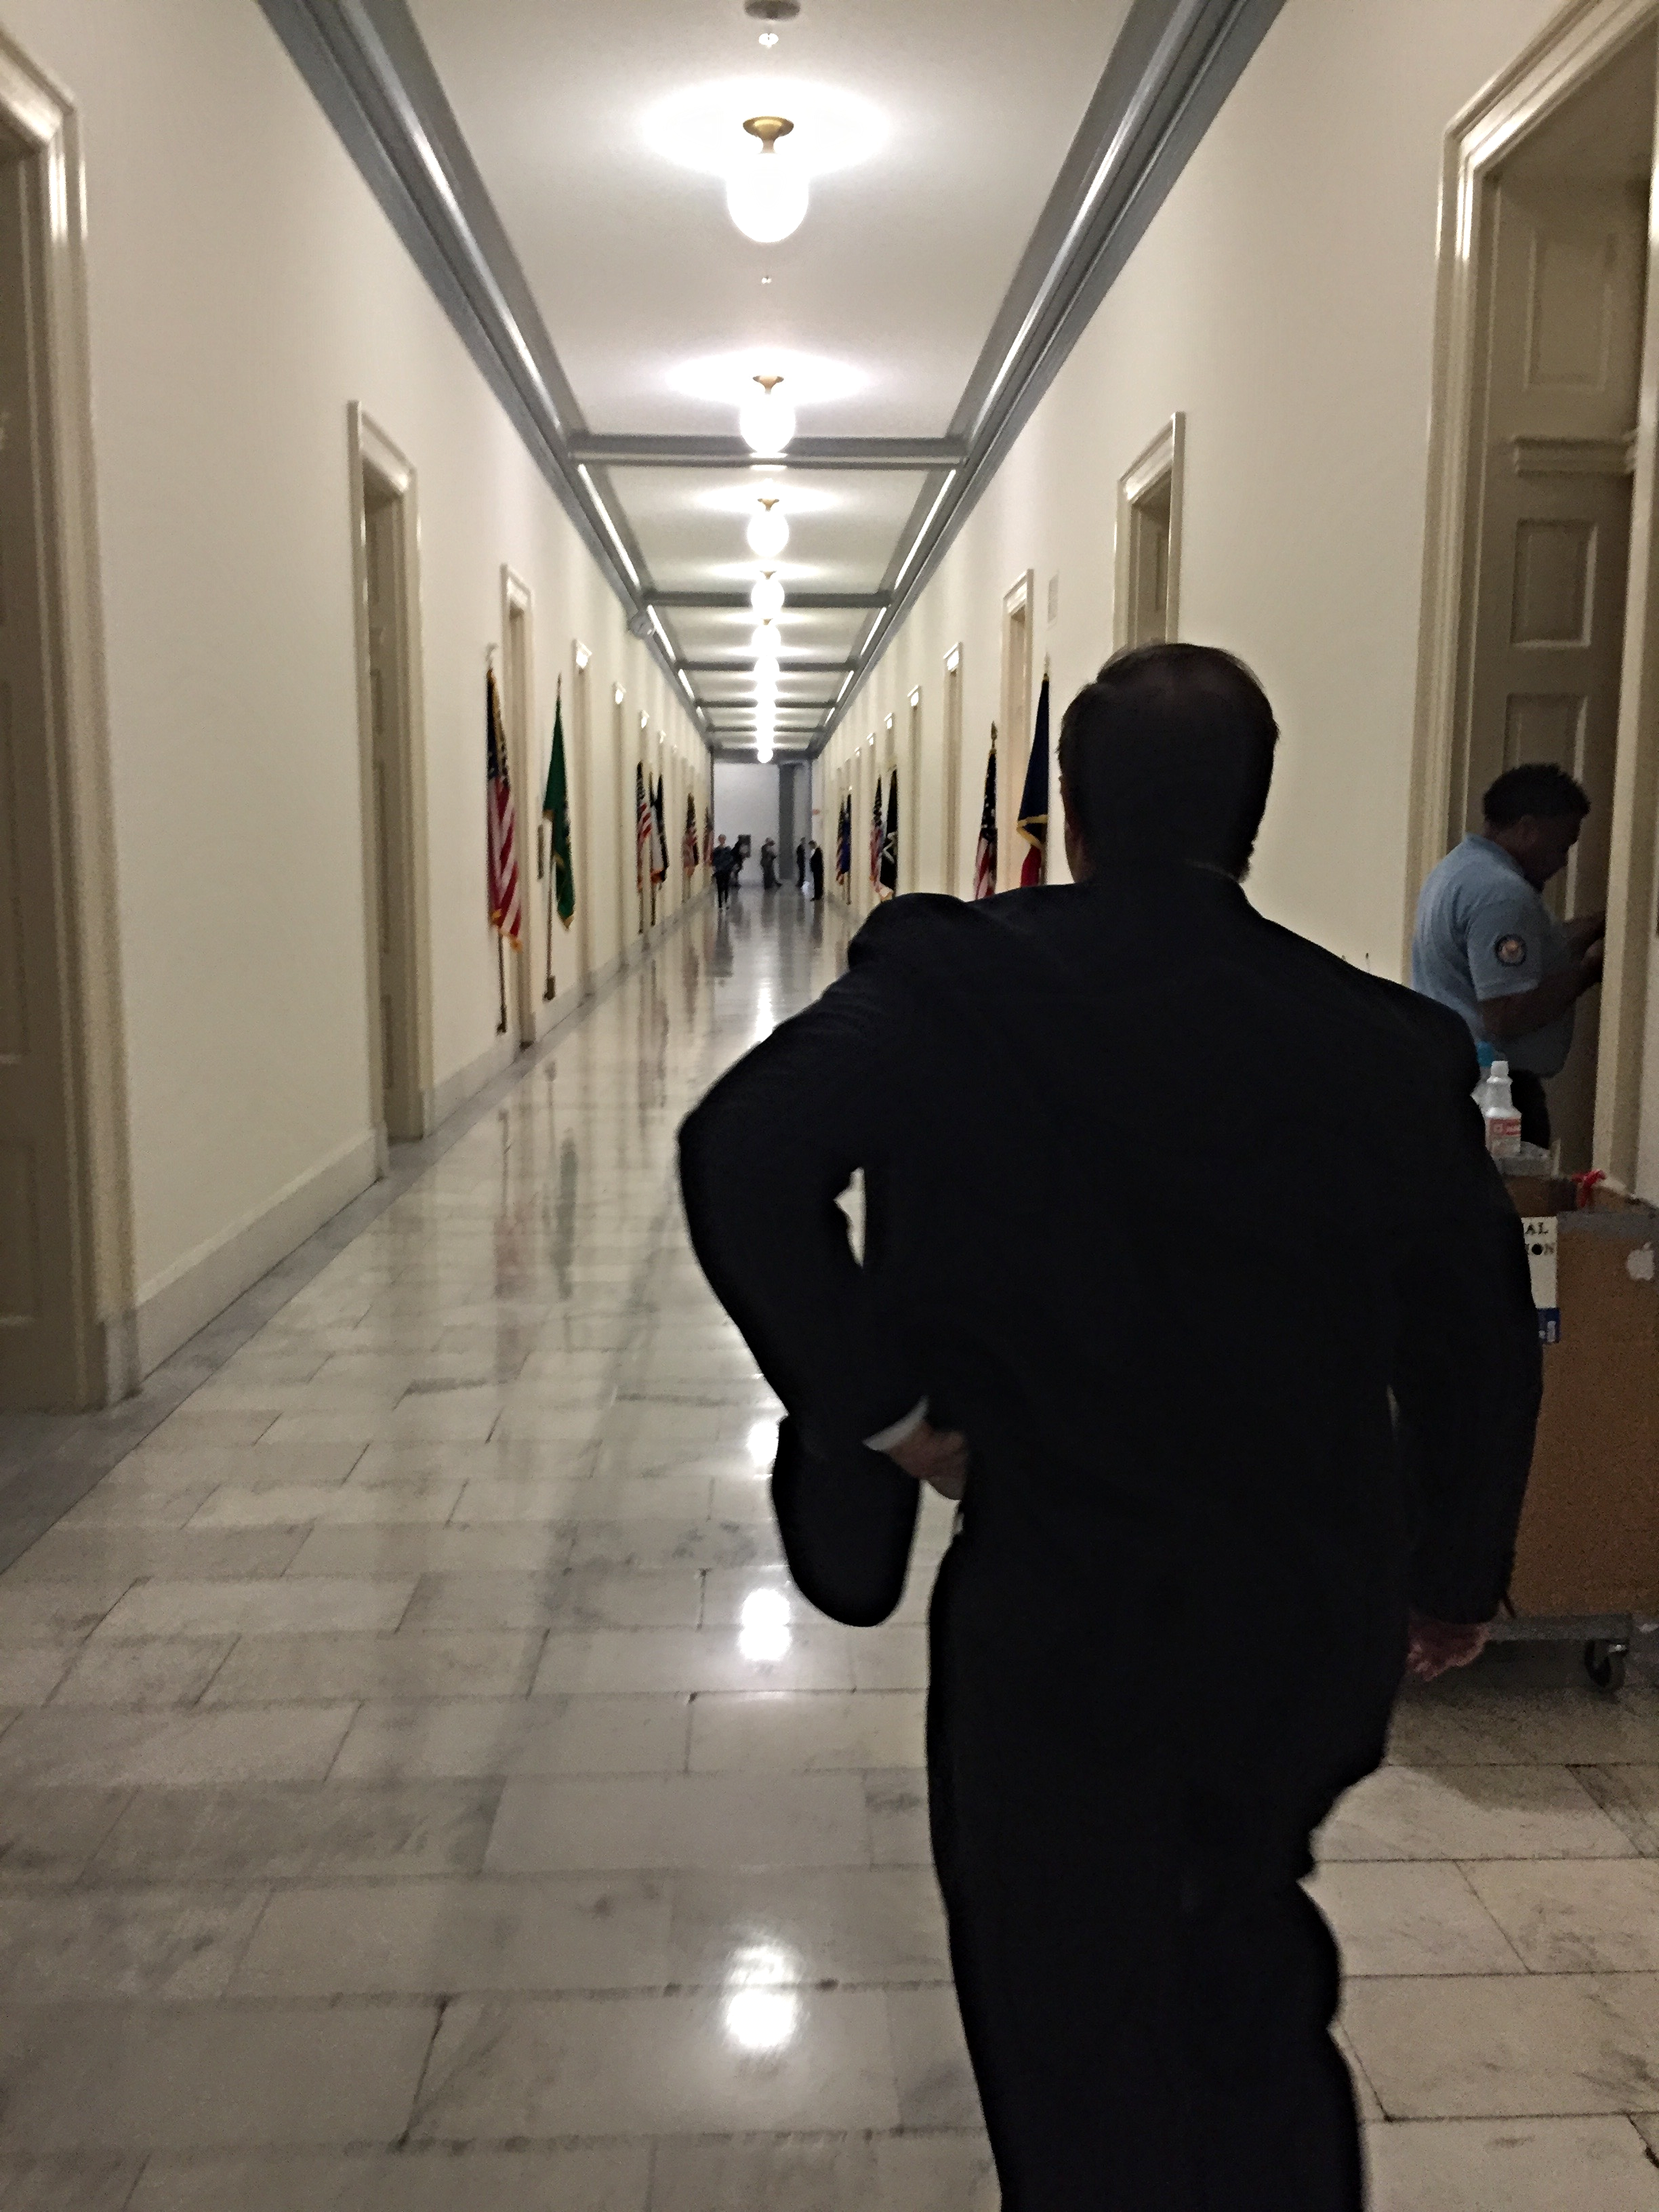 A legislator walks down the halls of the Cannon House Office Building.